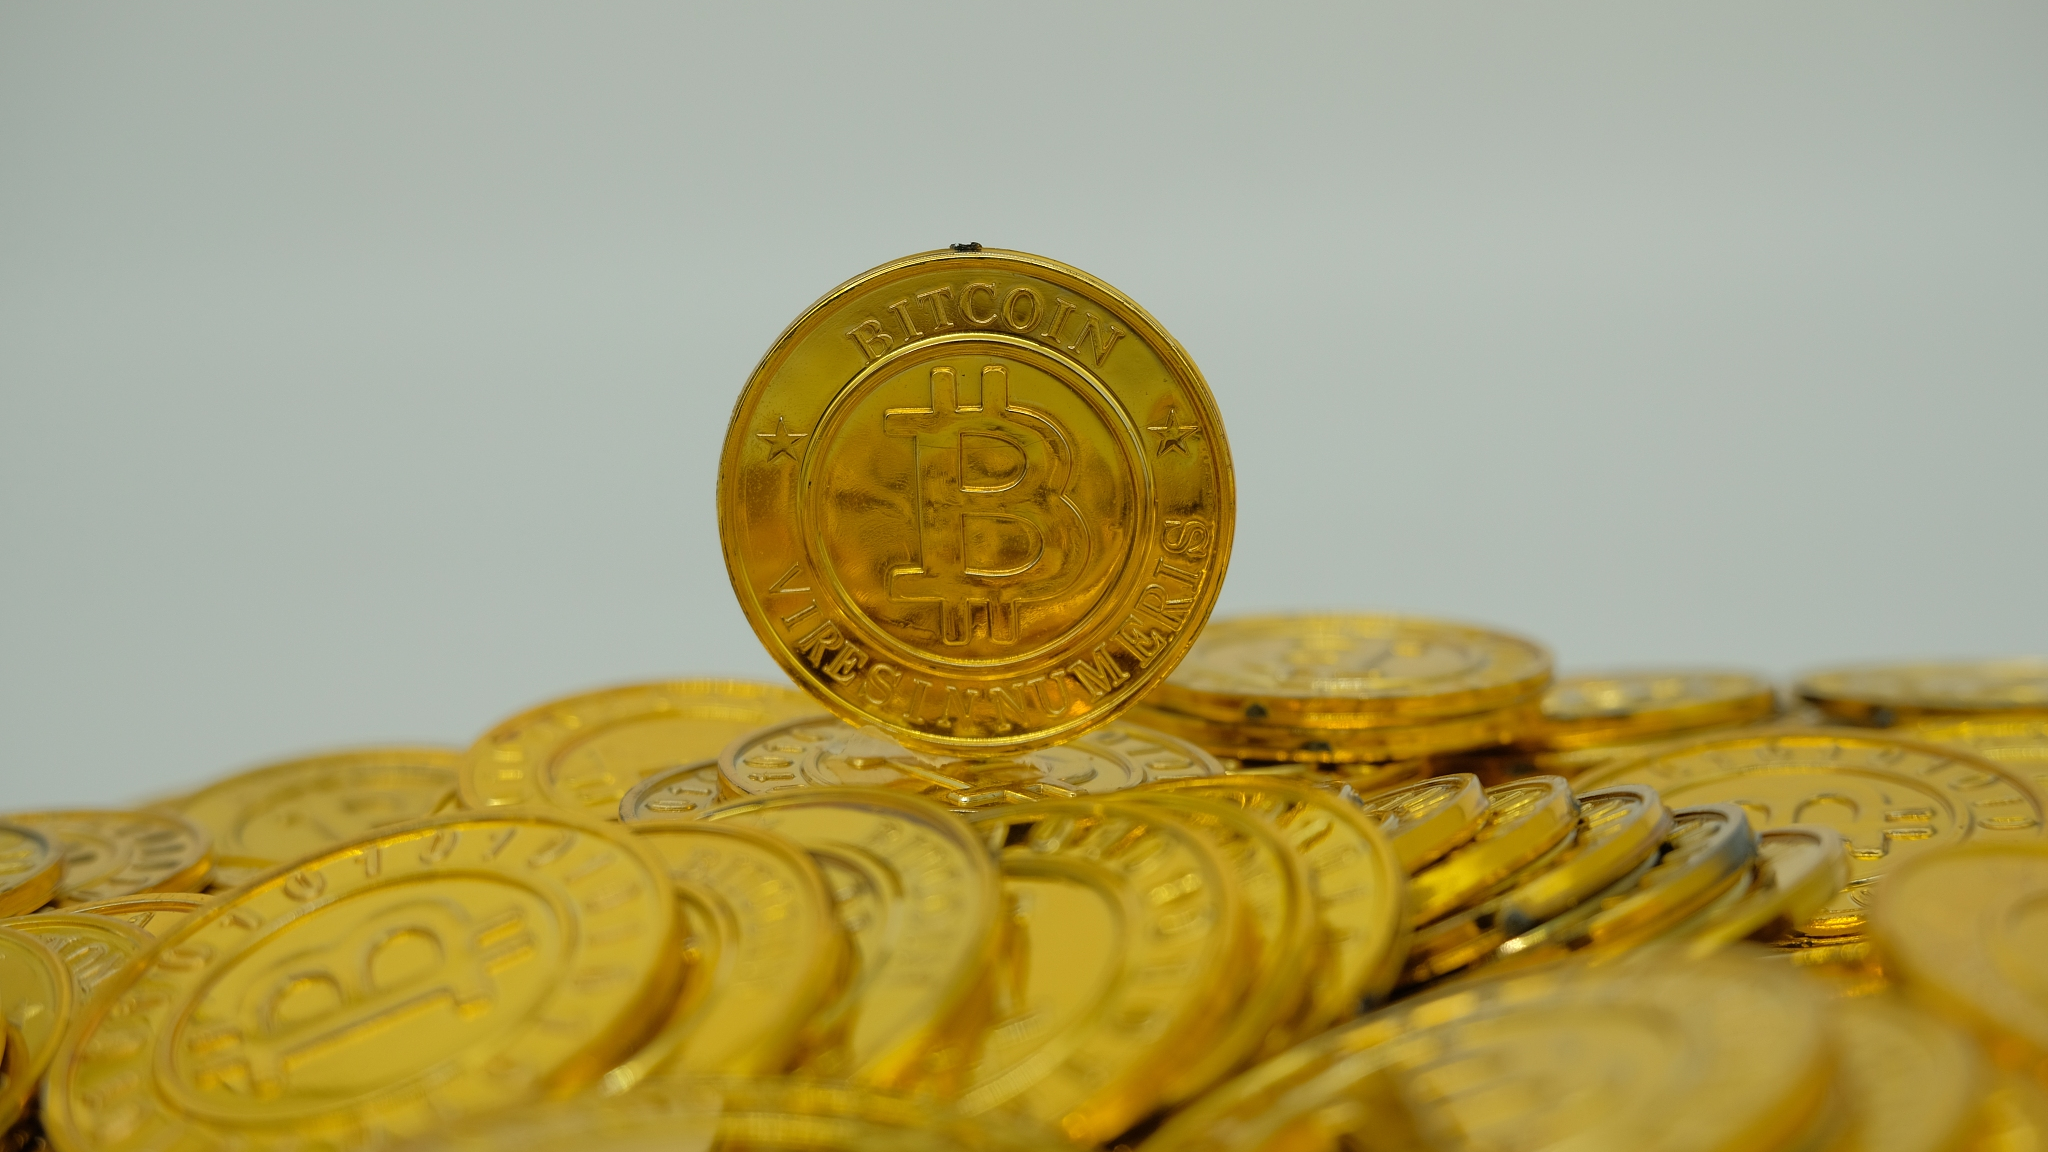 https://news.cgtn.com/news/2021-02-12/Bitcoin-soars-to-all-time-high-after-BNY-Mellon-s-crypto-venture-XOtLeWYB0I/img/e9731bd982e041029da429c37f112d7c/e9731bd982e041029da429c37f112d7c.png